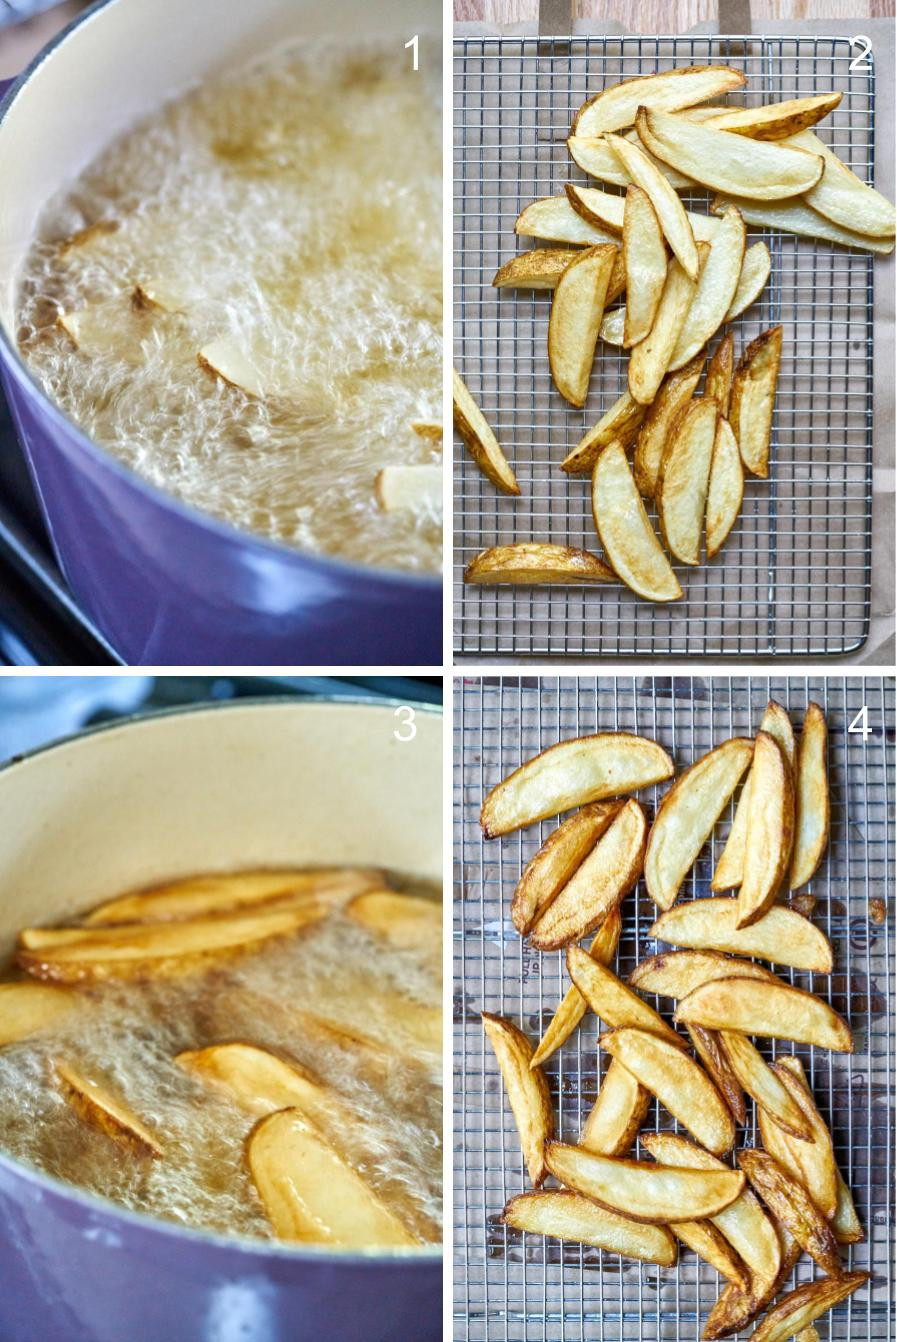 Twice frying fries for an extra golden brown crisp and soft center.